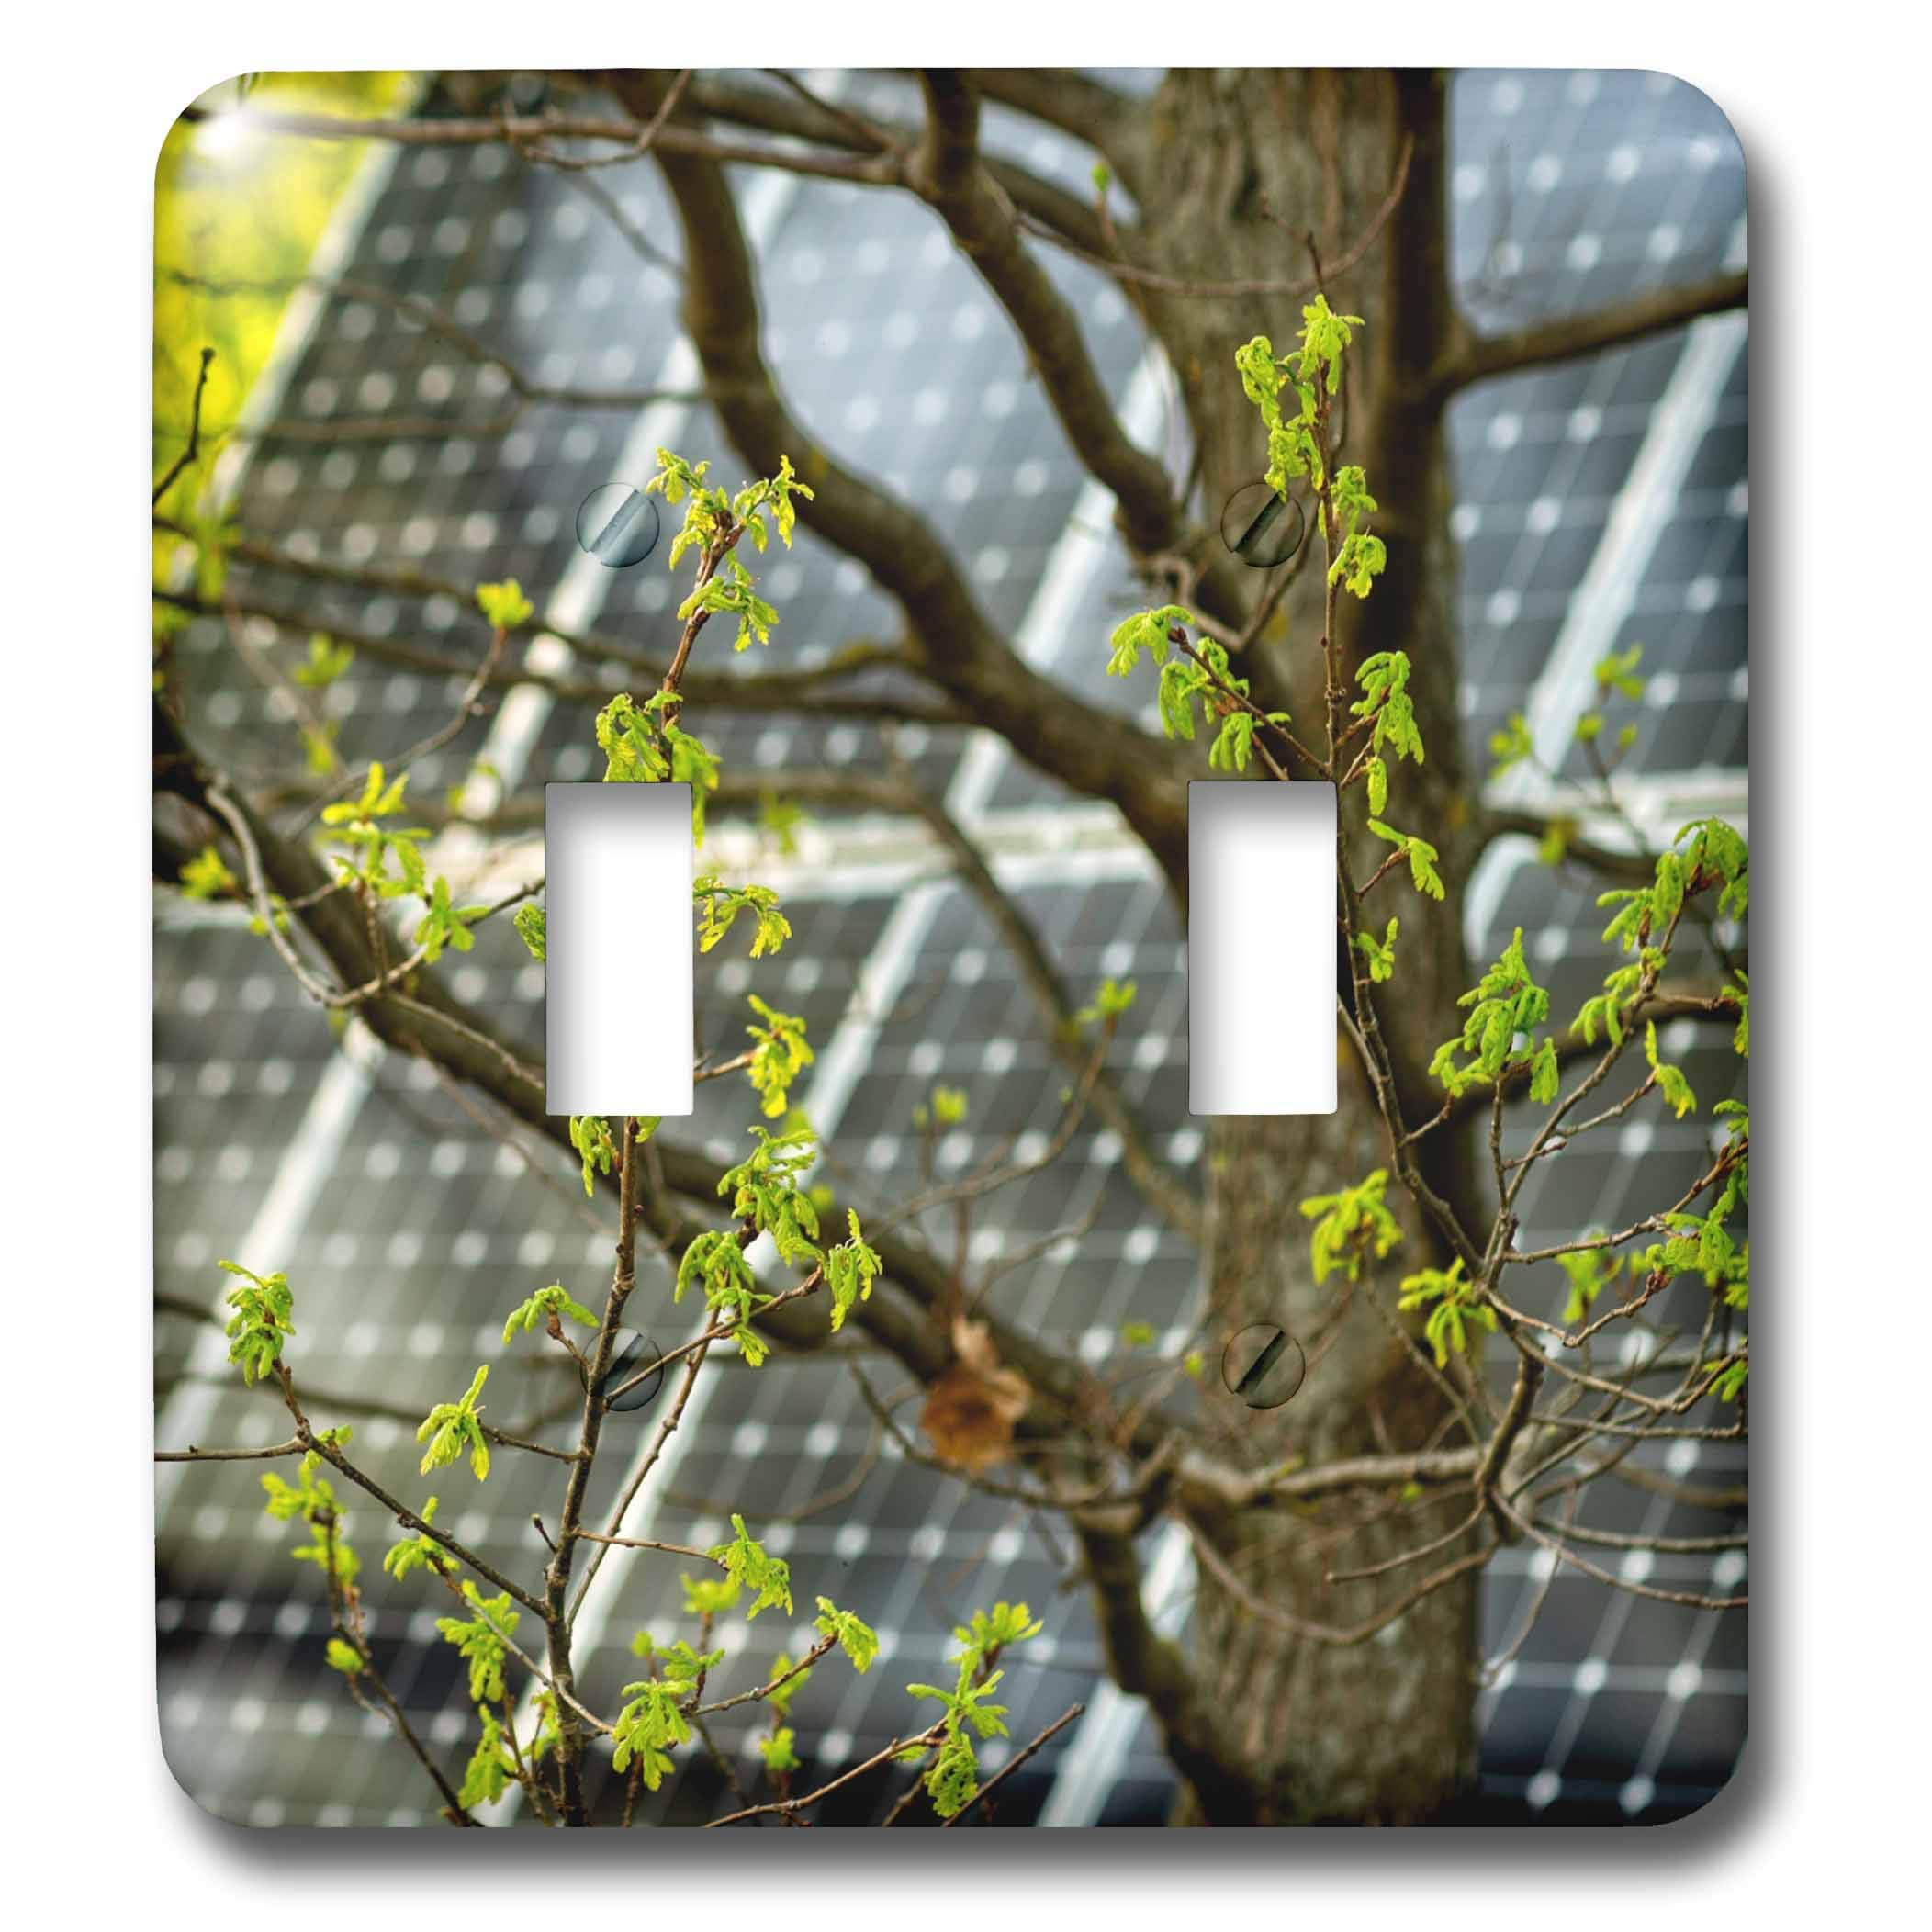 3dRose Alexis Photography - Objects - Oak tree with fresh leaves, solar power panel in the background - Light Switch Covers - double toggle switch (lsp_290827_2)